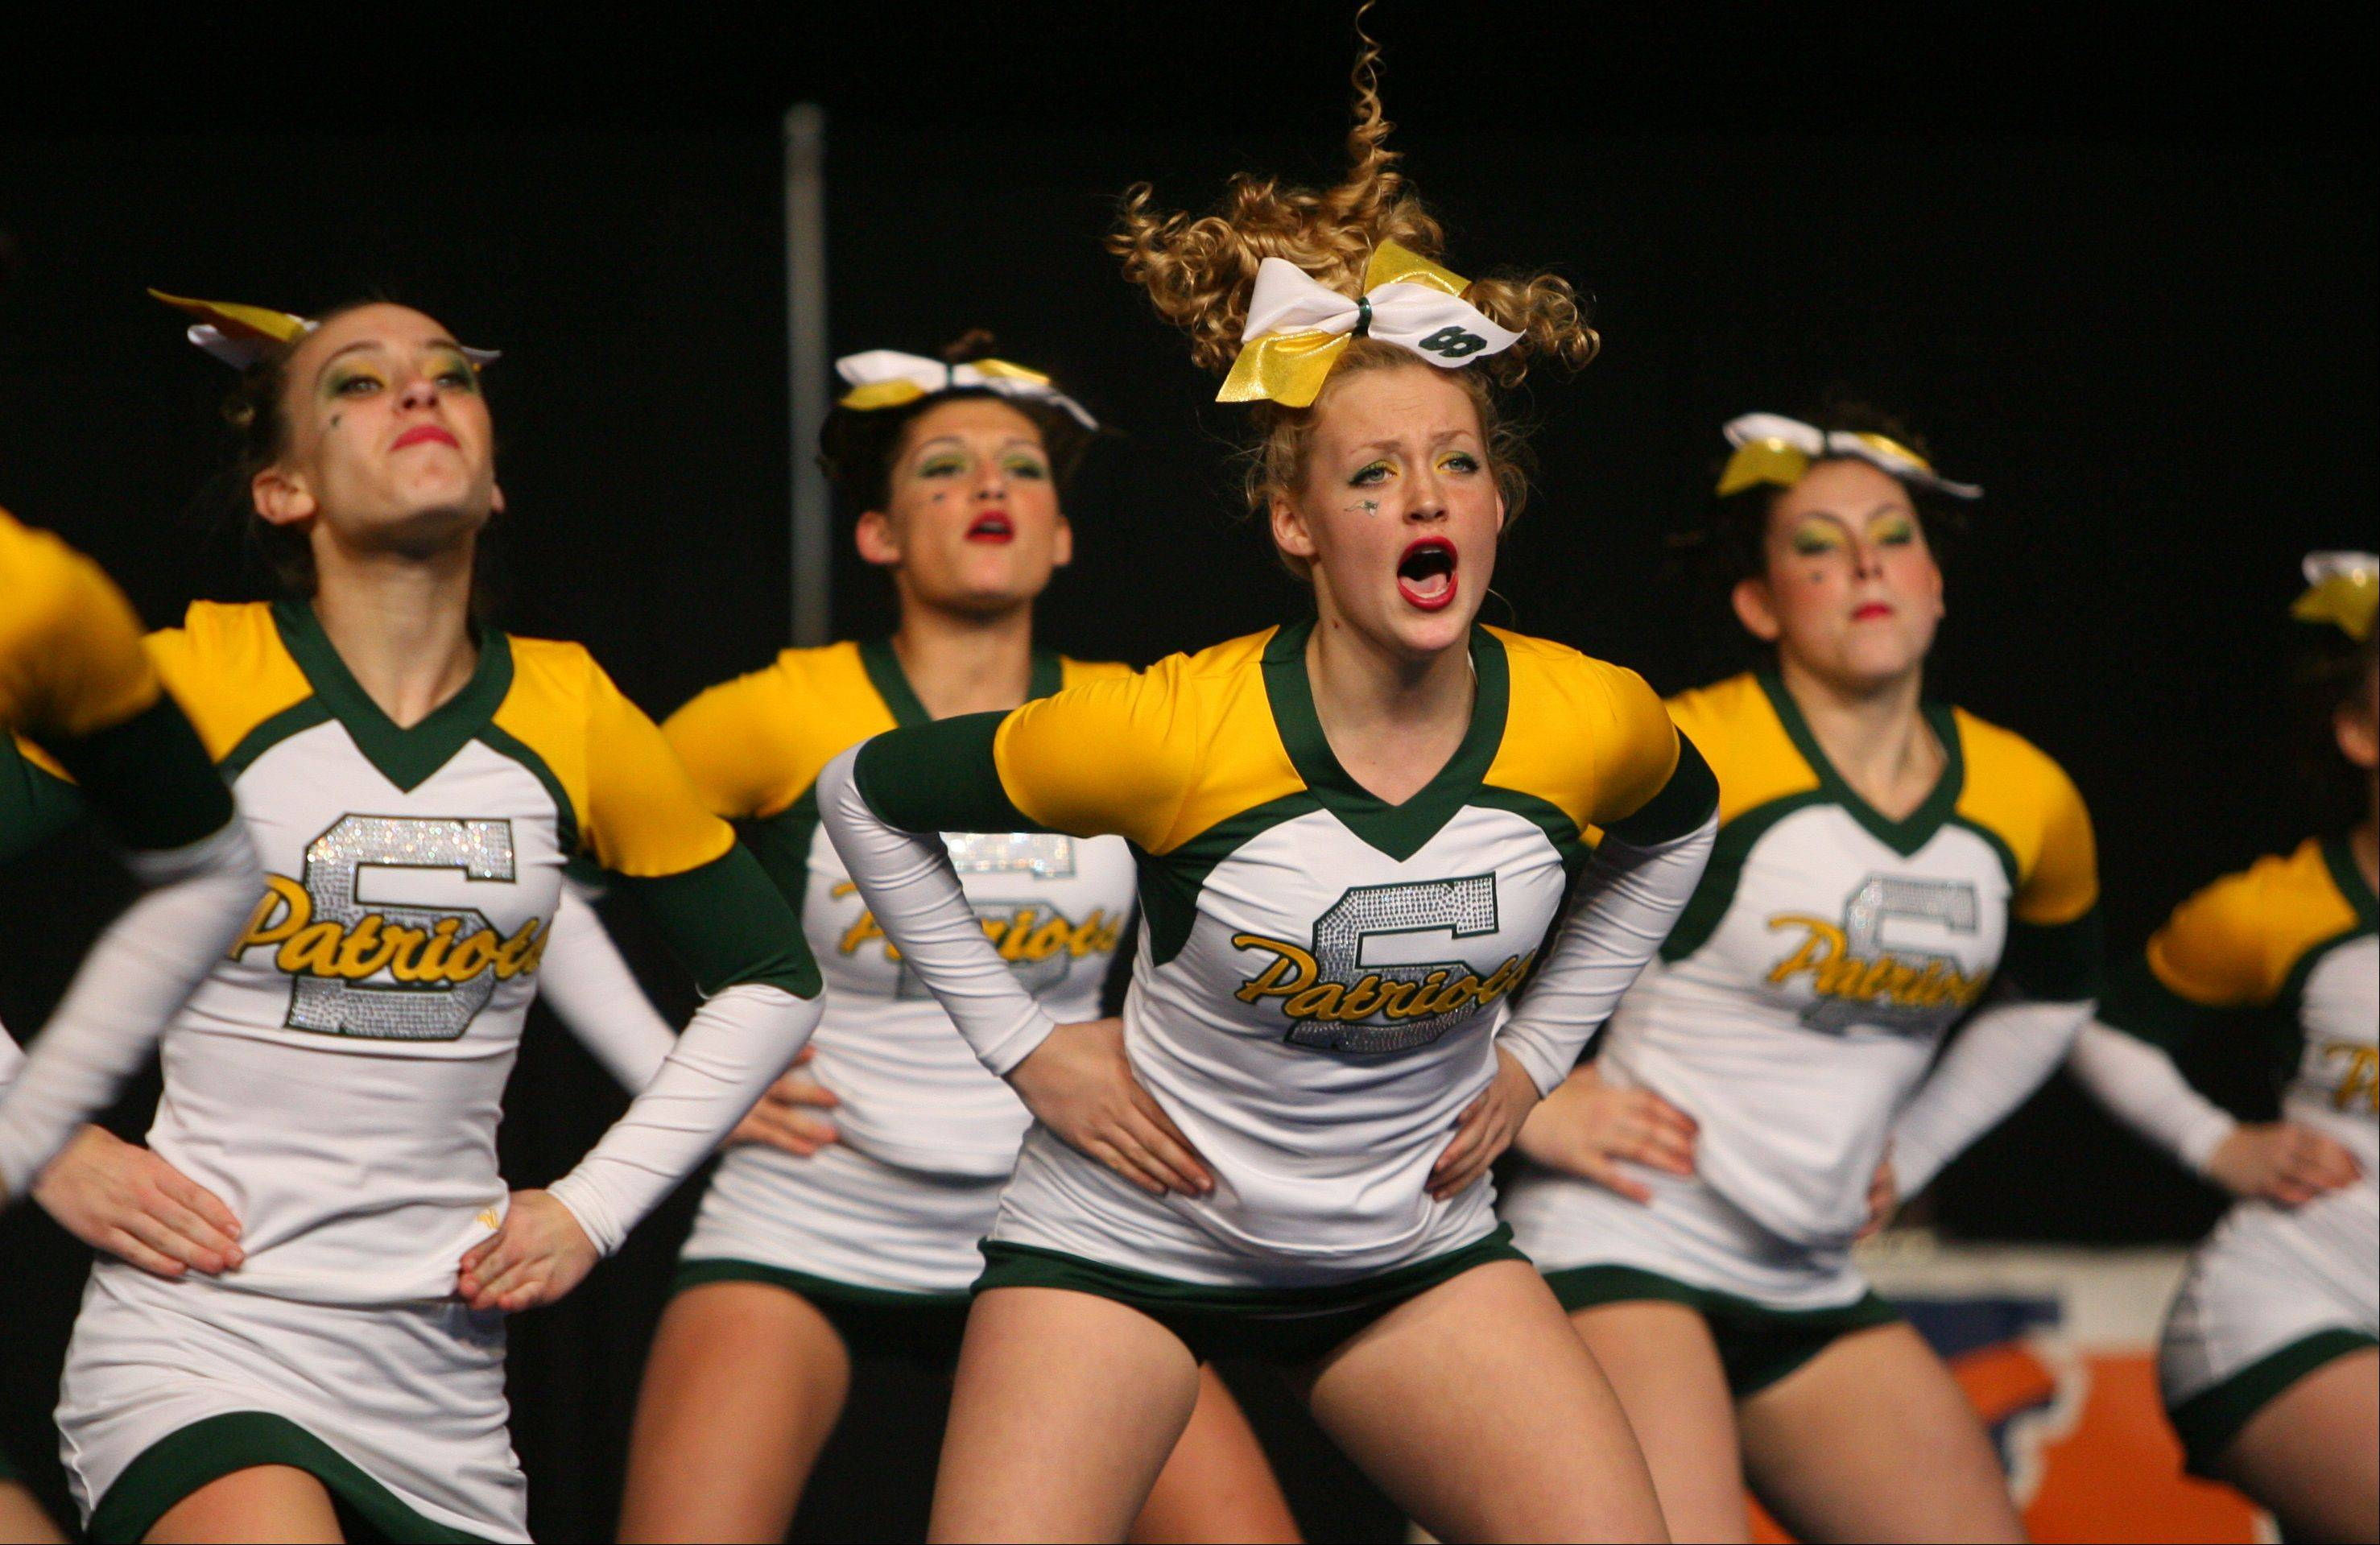 Stevenson High School competes in the in the Competitive Cheerleading prelims on Friday at the U.S. Cellular Coliseum in Bloomington.